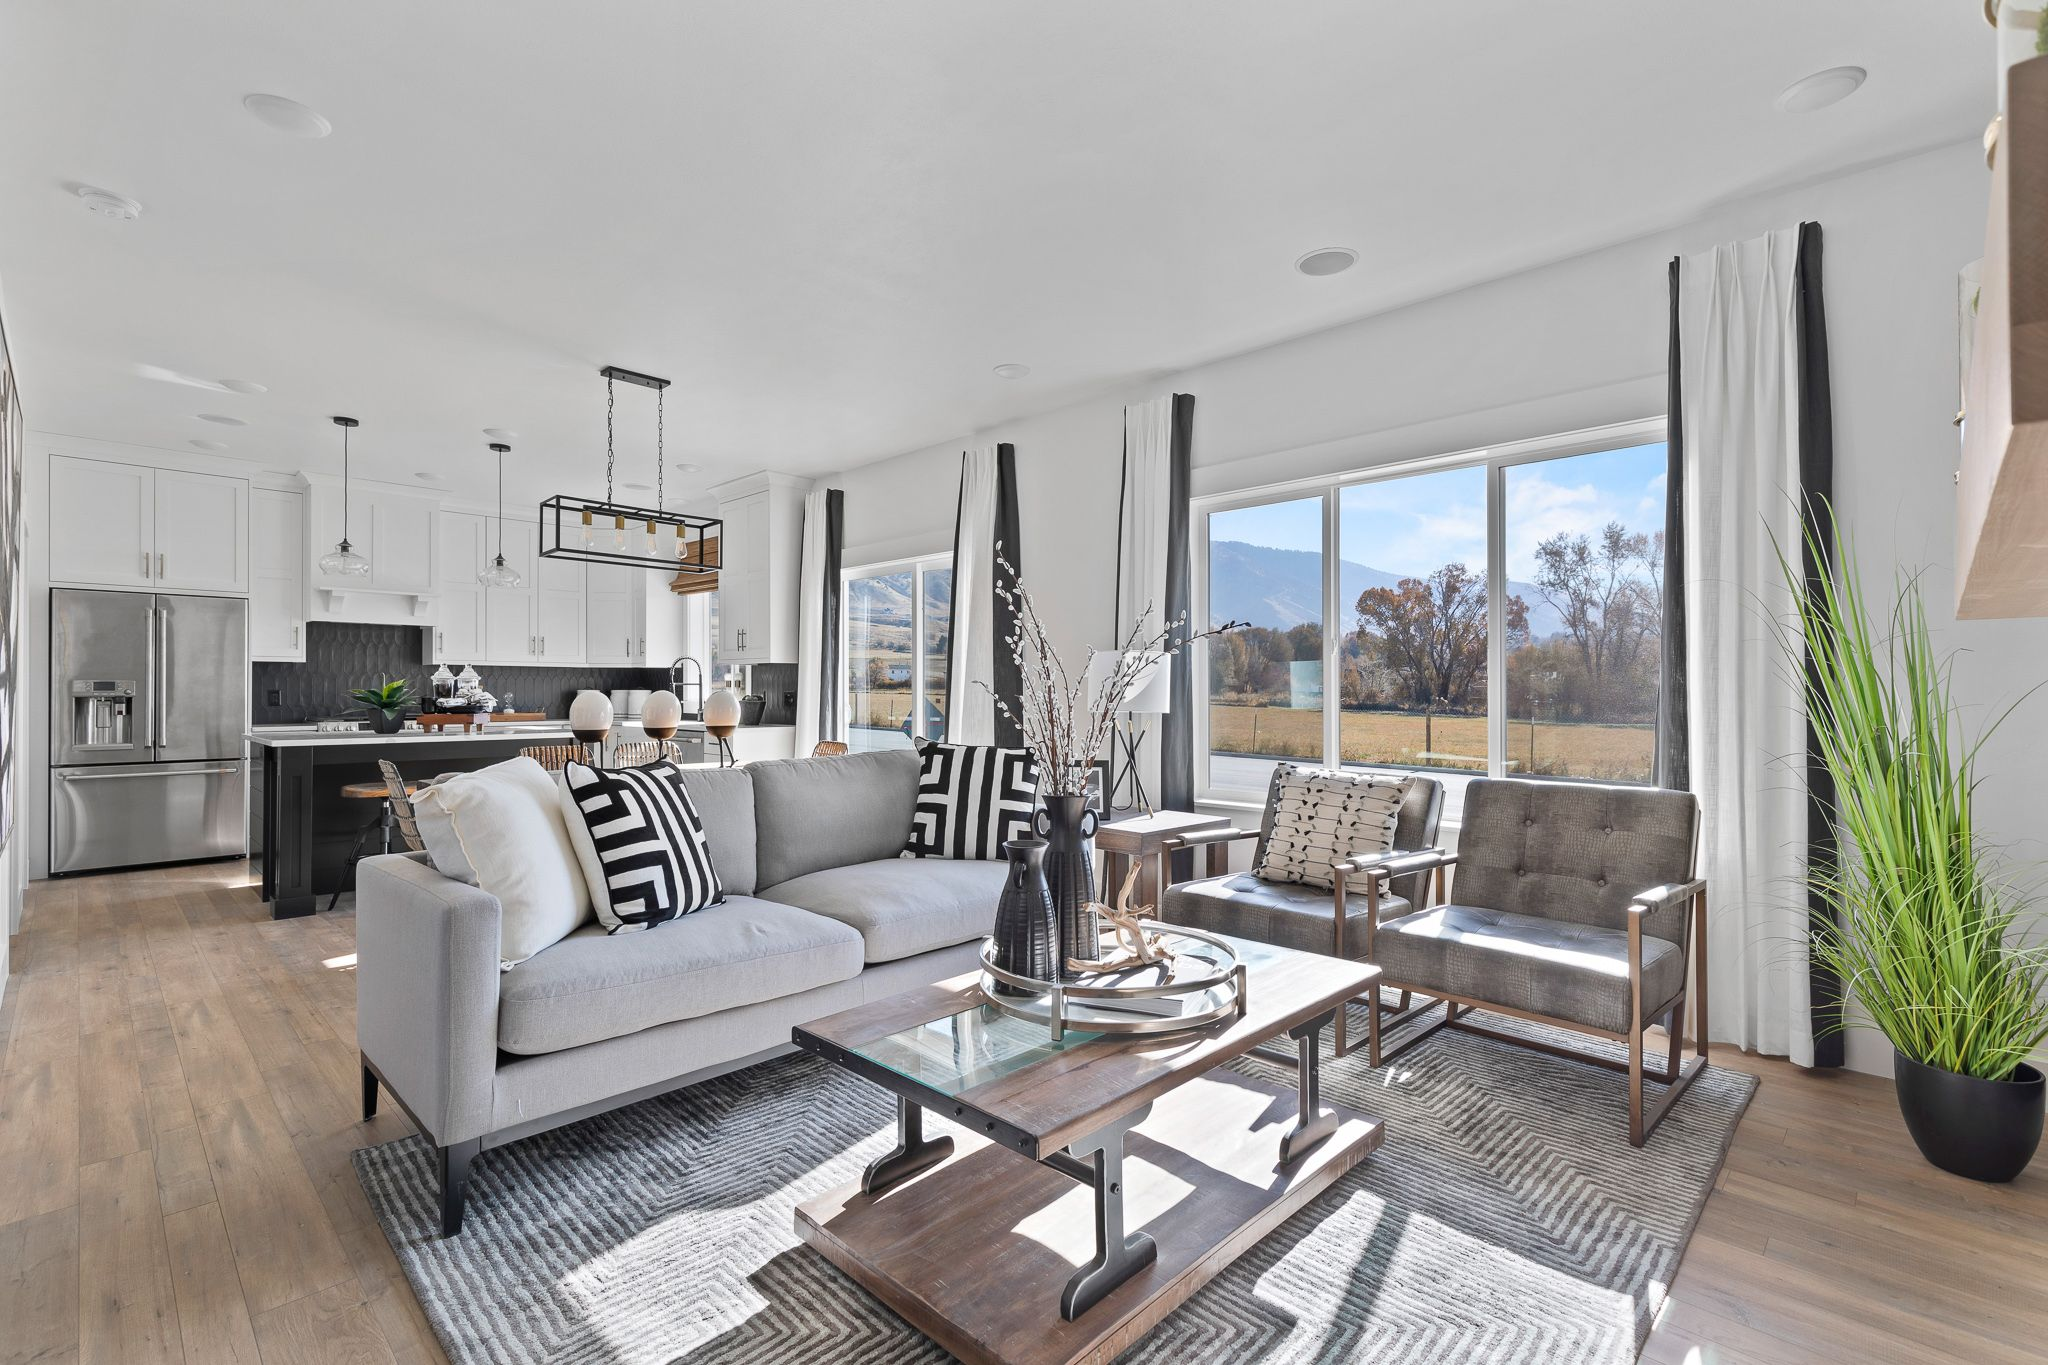 Living Area featured in the Madison (SOG) By Visionary Homes in Logan, UT